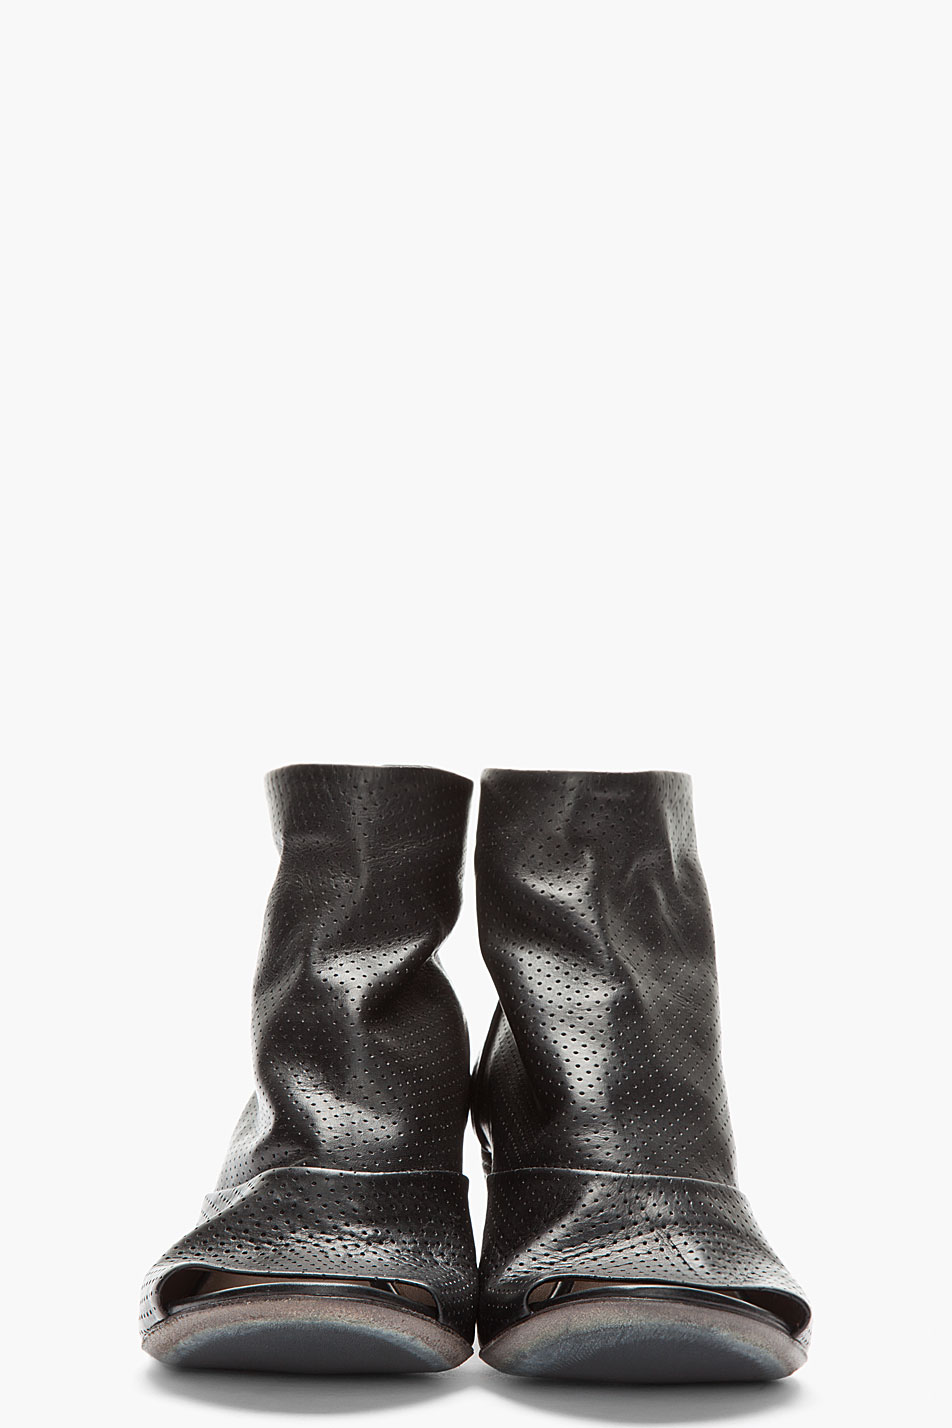 mars 232 ll black leather open toe perforated zip ankle boots